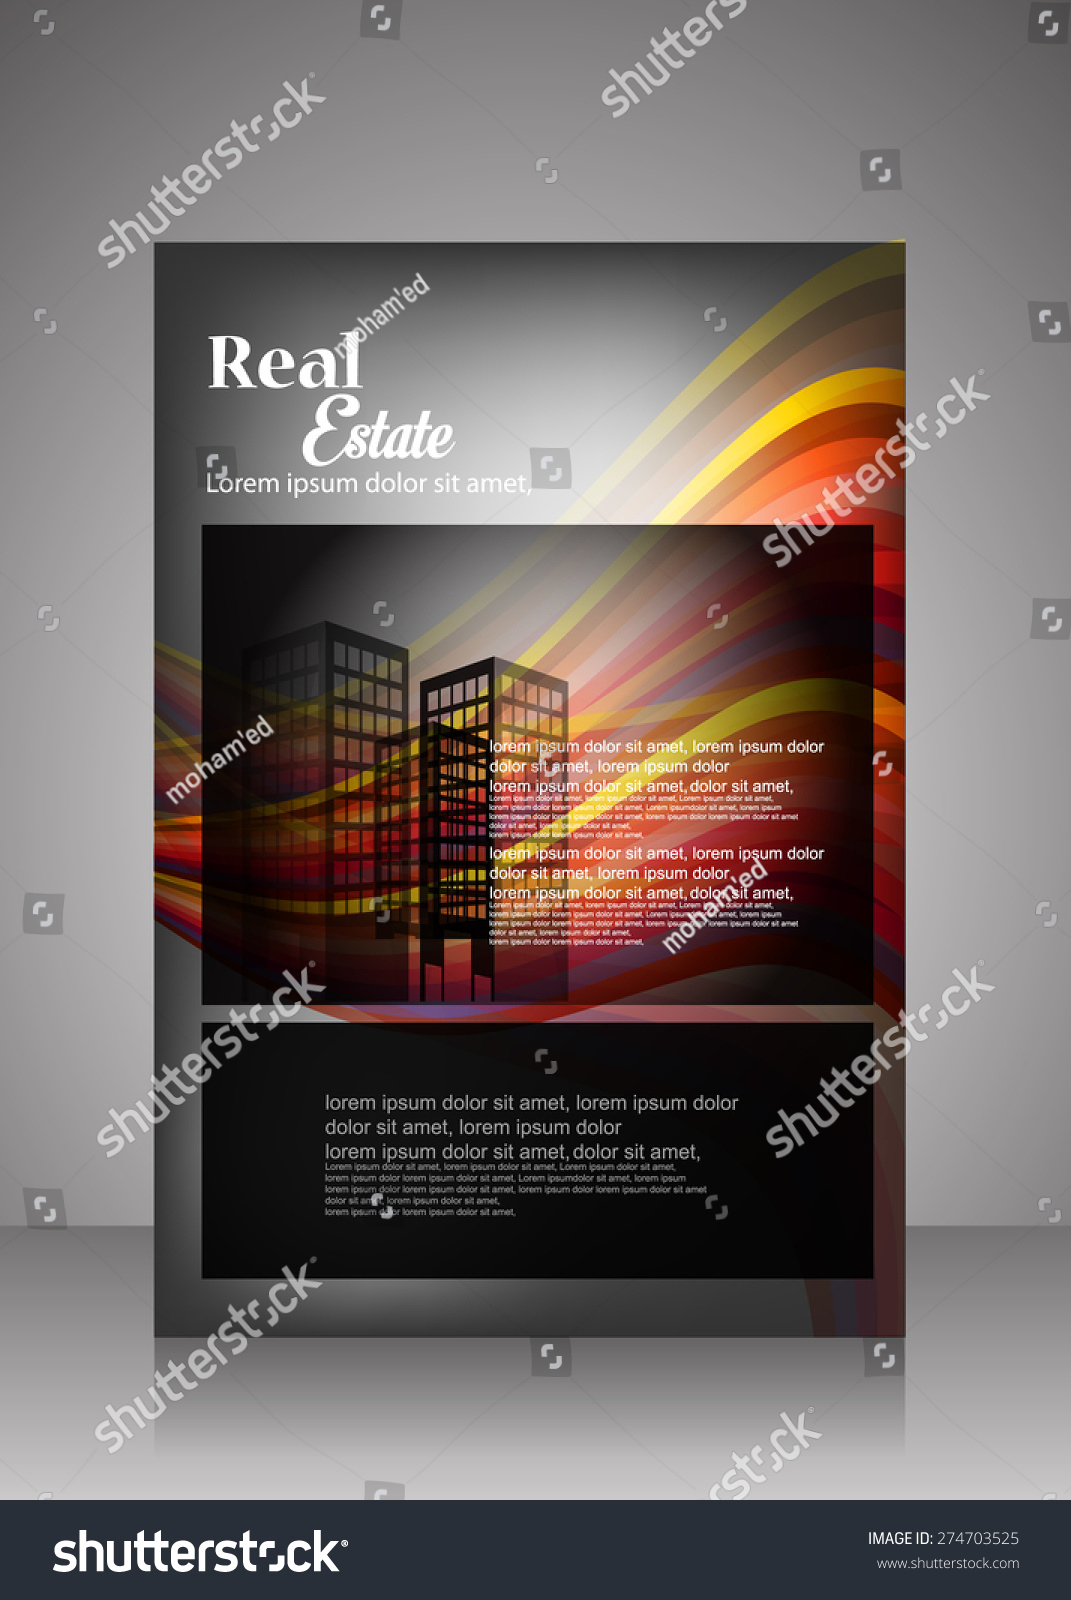 vector real estate flyer brochure template stock vector 274703525 vector real estate flyer brochure template